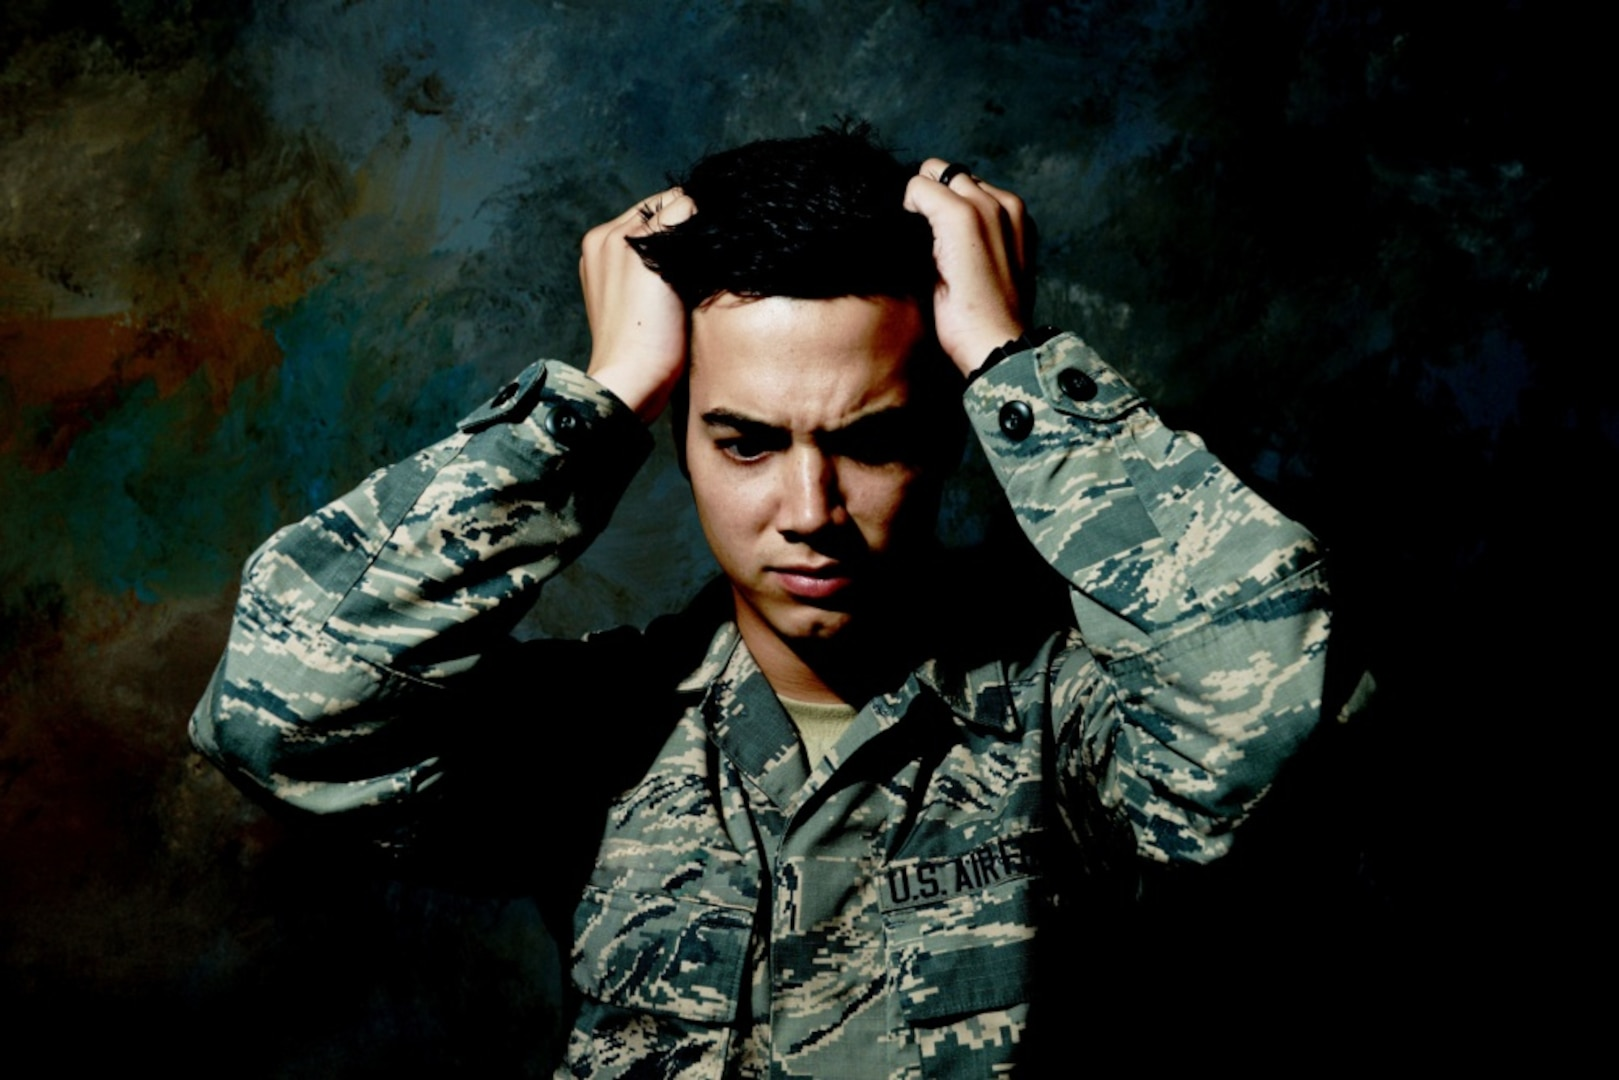 Stress can affect anyone. Common negative stressors include family, work or financial problems and are detrimental to an individual's physical and mental health over time. (U.S. Air Force illustration by Airman 1st Class Destinee Dougherty)